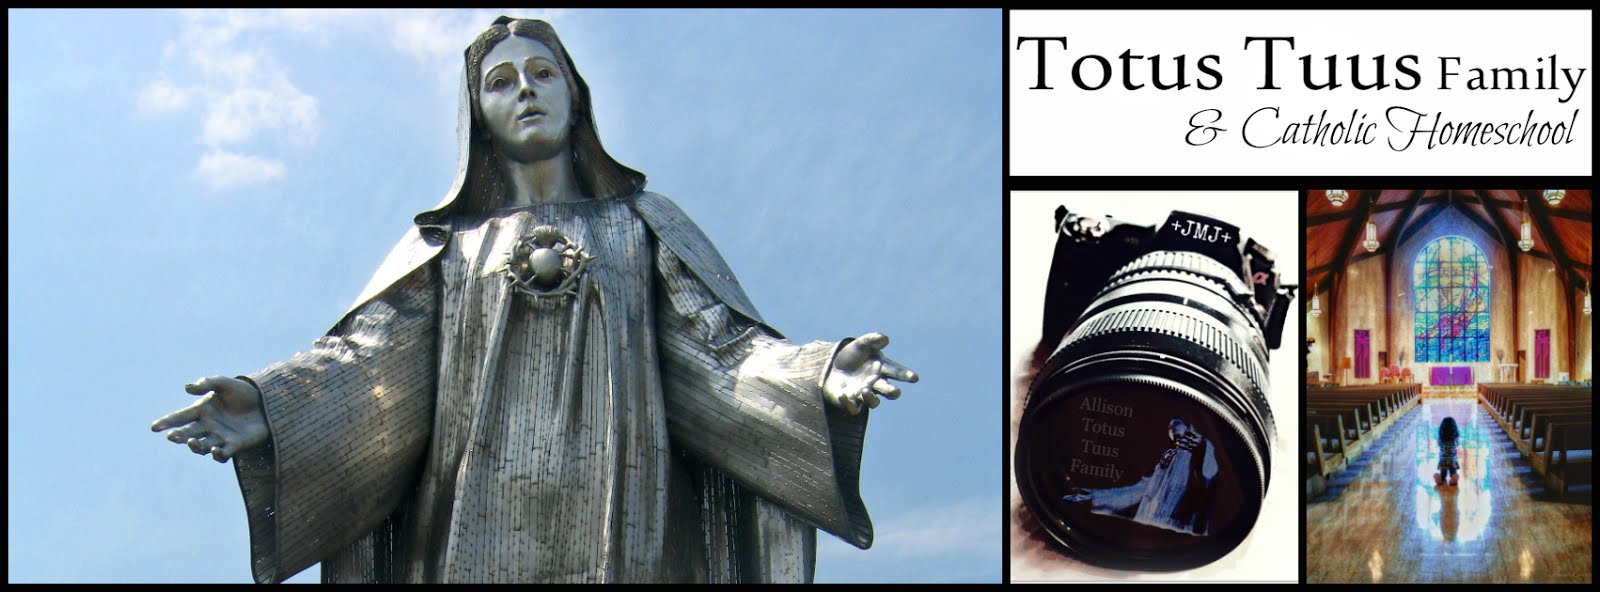 Totus Tuus Family & Catholic Homeschool